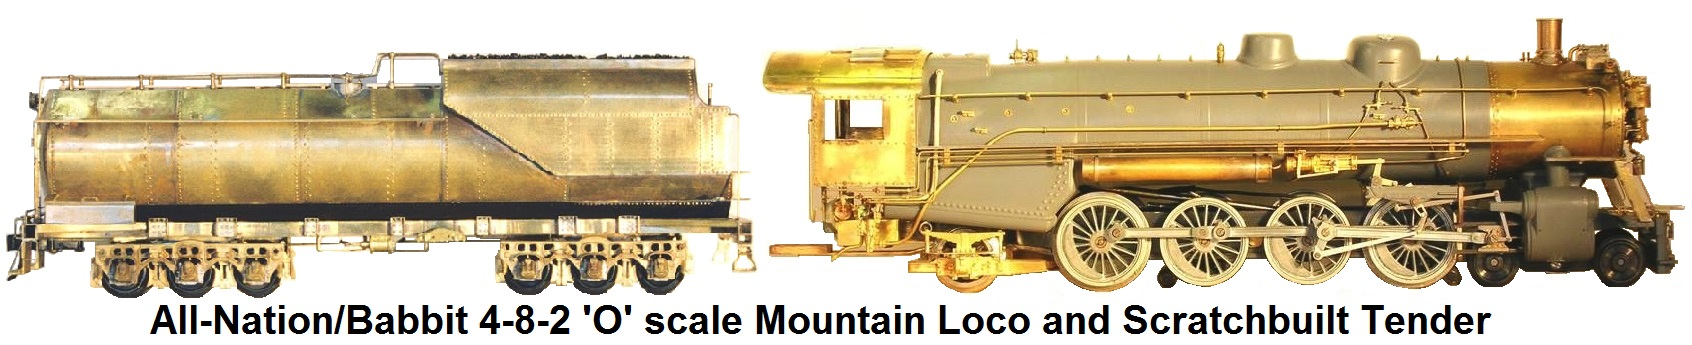 All-Nation Babbit 4-8-2 'O' scale Mountain Loco and Scratchbuilt tender